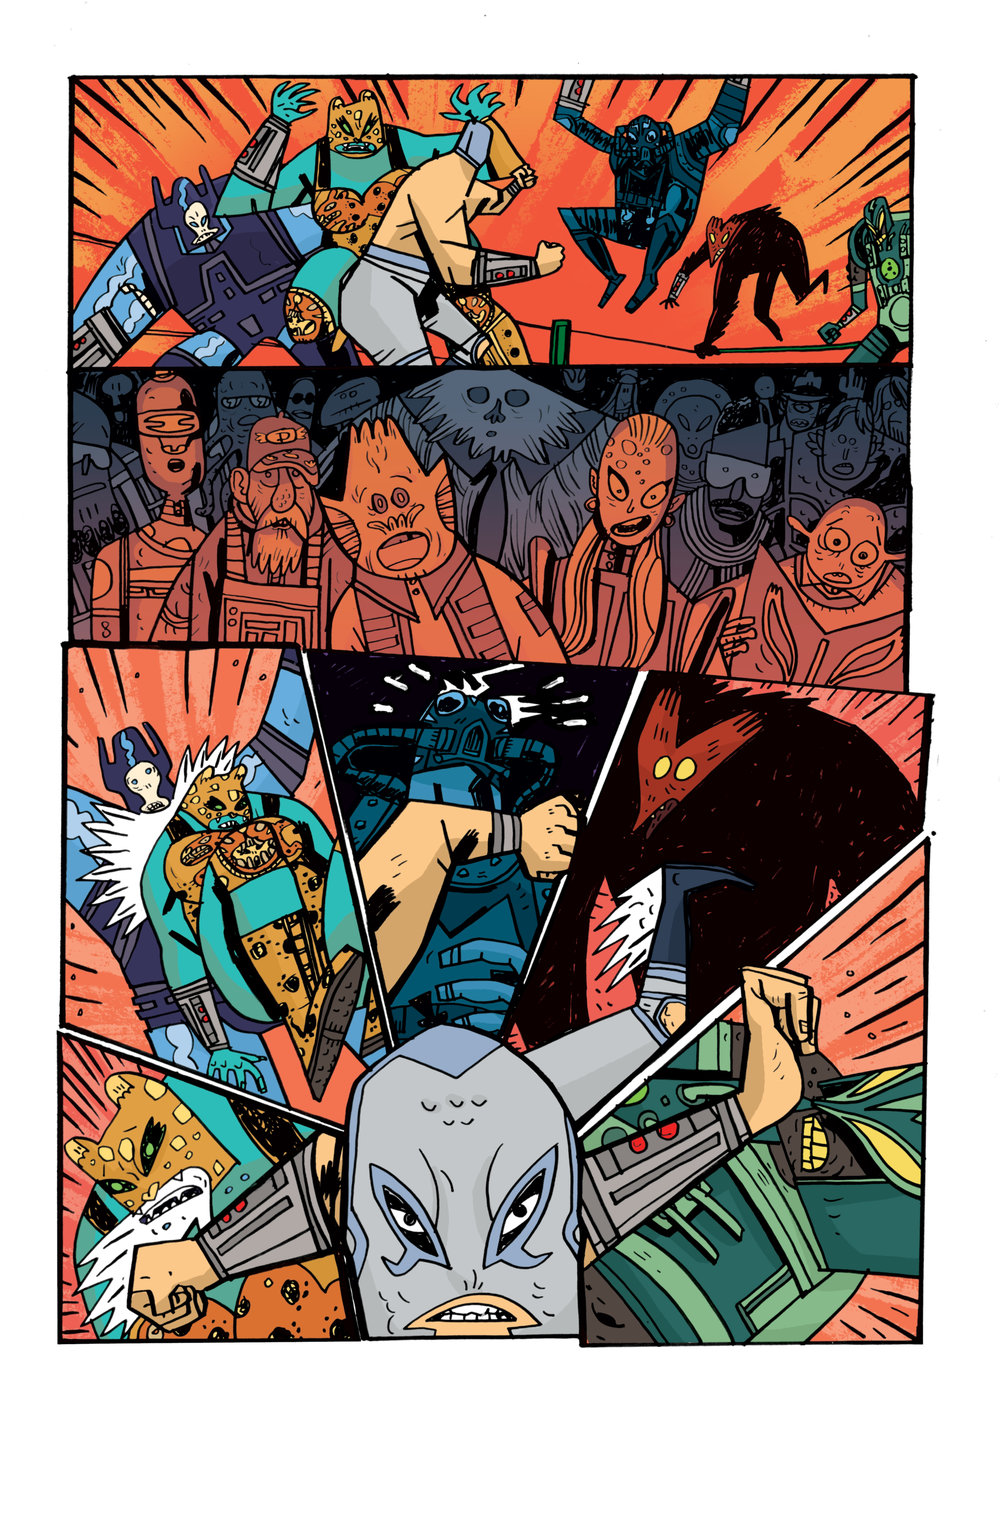 Colors for Samurai Jack: Quantum Jack #2 (IDW) – Art by Warwick Johnson Cadwell